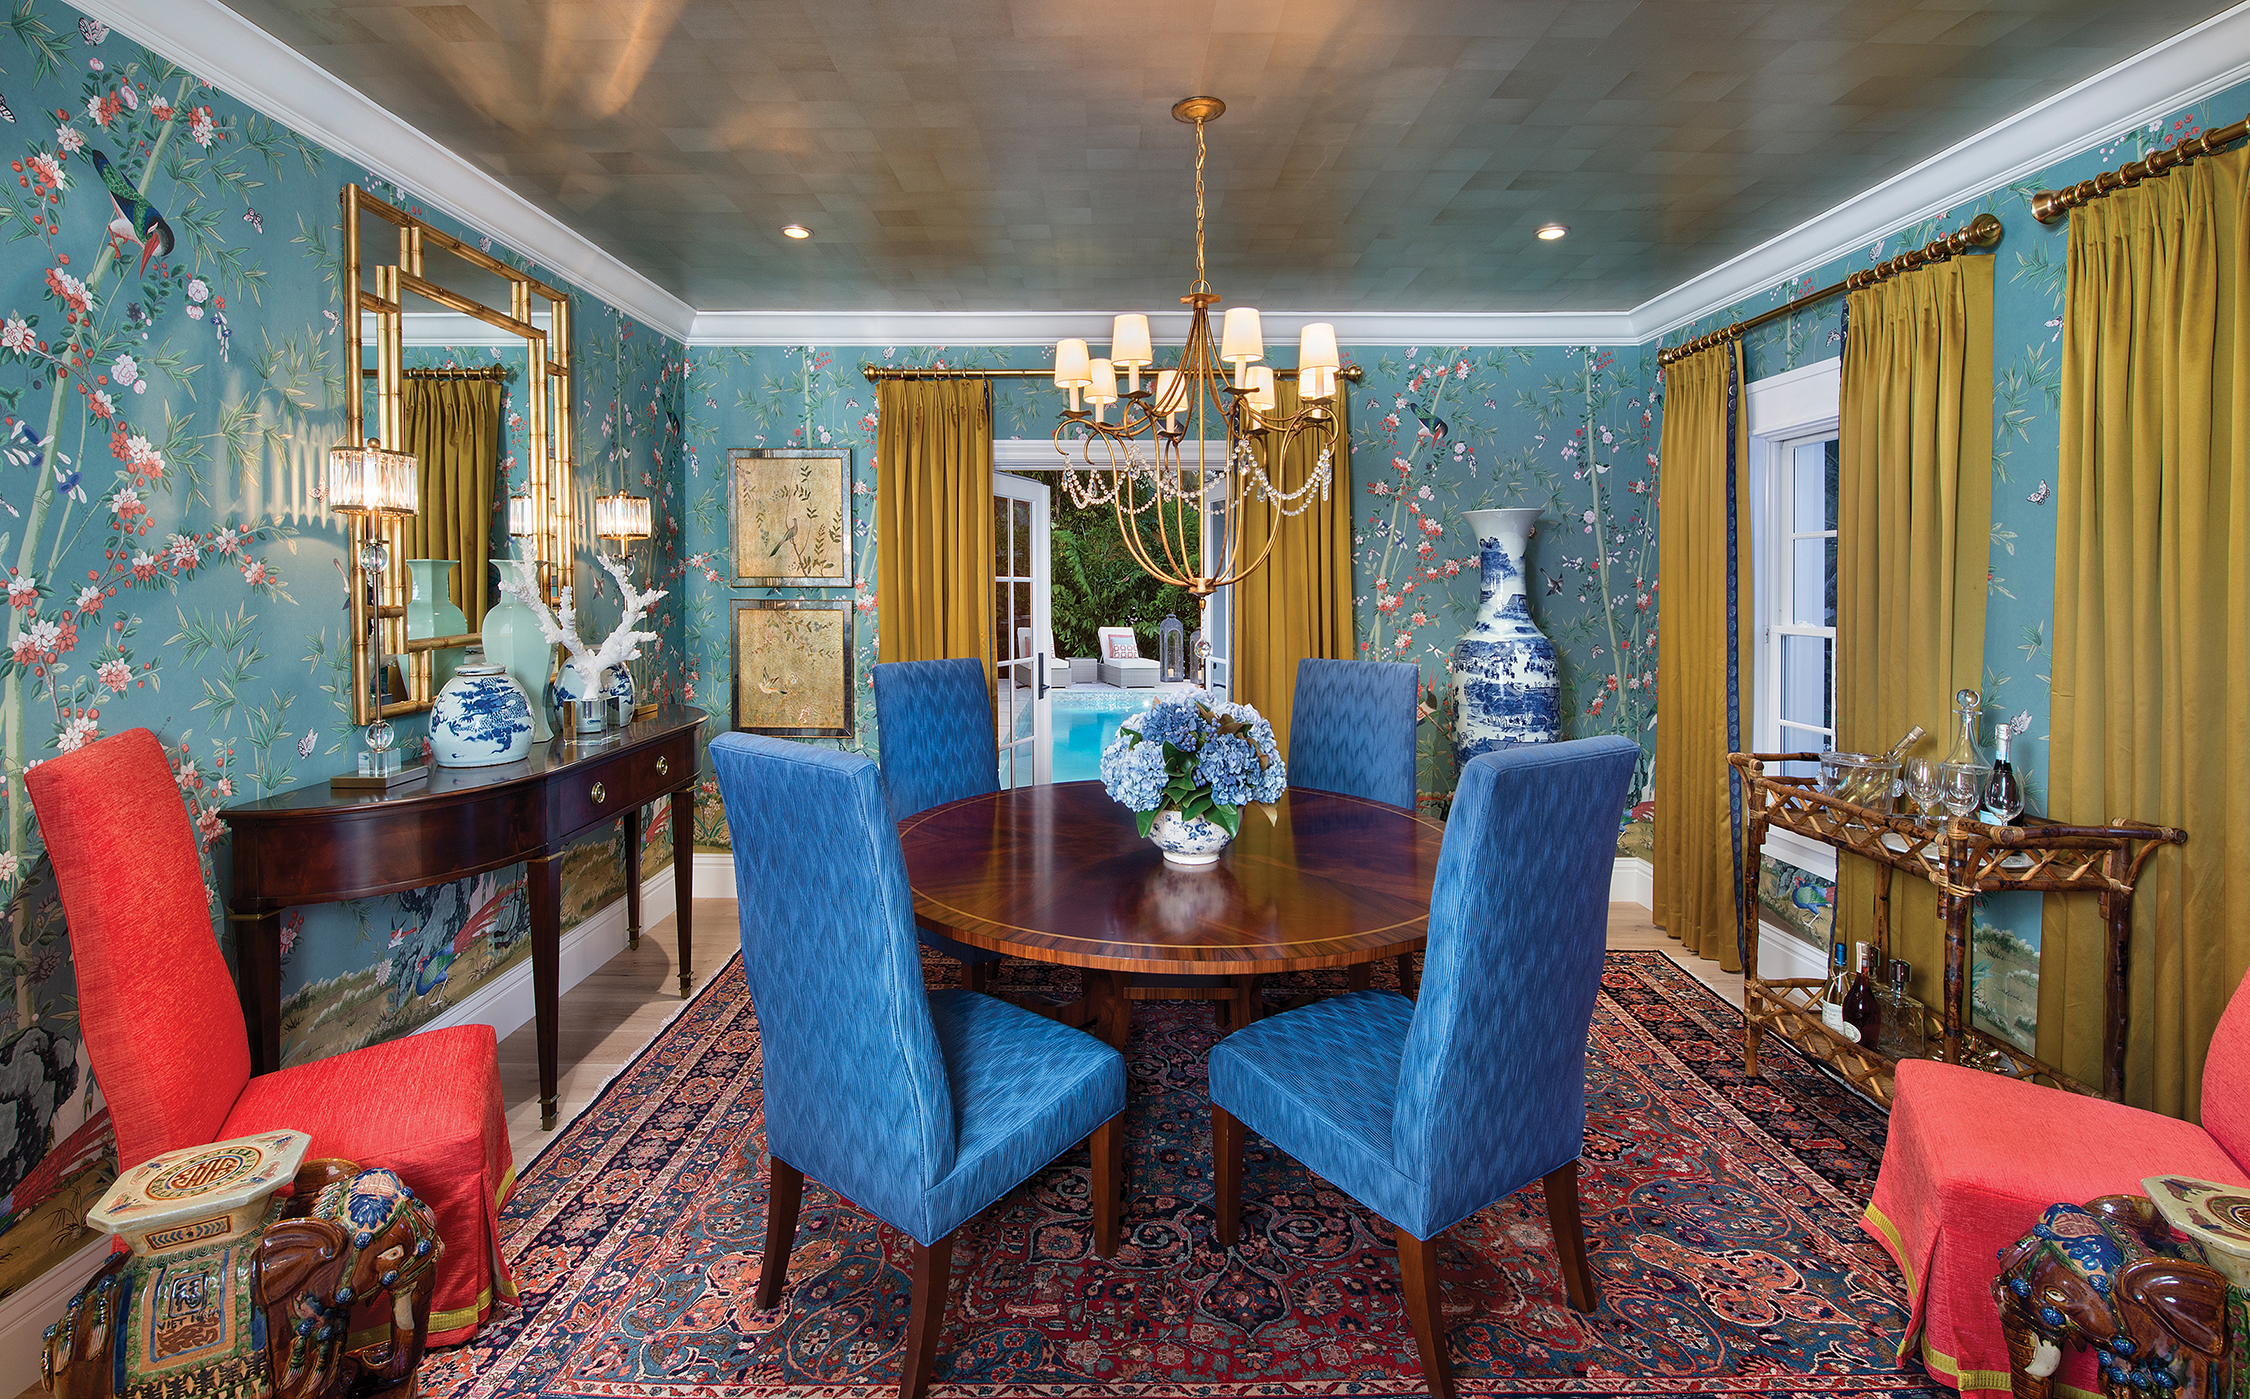 Filled with saturated color and textural layers, the dining room is a space that gives the homeowners a truly formal entertaining area. American made chinoiserie wallpaper represents a new opportunity for designers as it replaces the more expensive and labor-intensive hand-painted method. The wallpaper sets the color scheme and period for the room, and is accented with the punch of Chinese red and oversized porcelains. The dark wood dining table sits on a rug that reinforces the traditional feel.